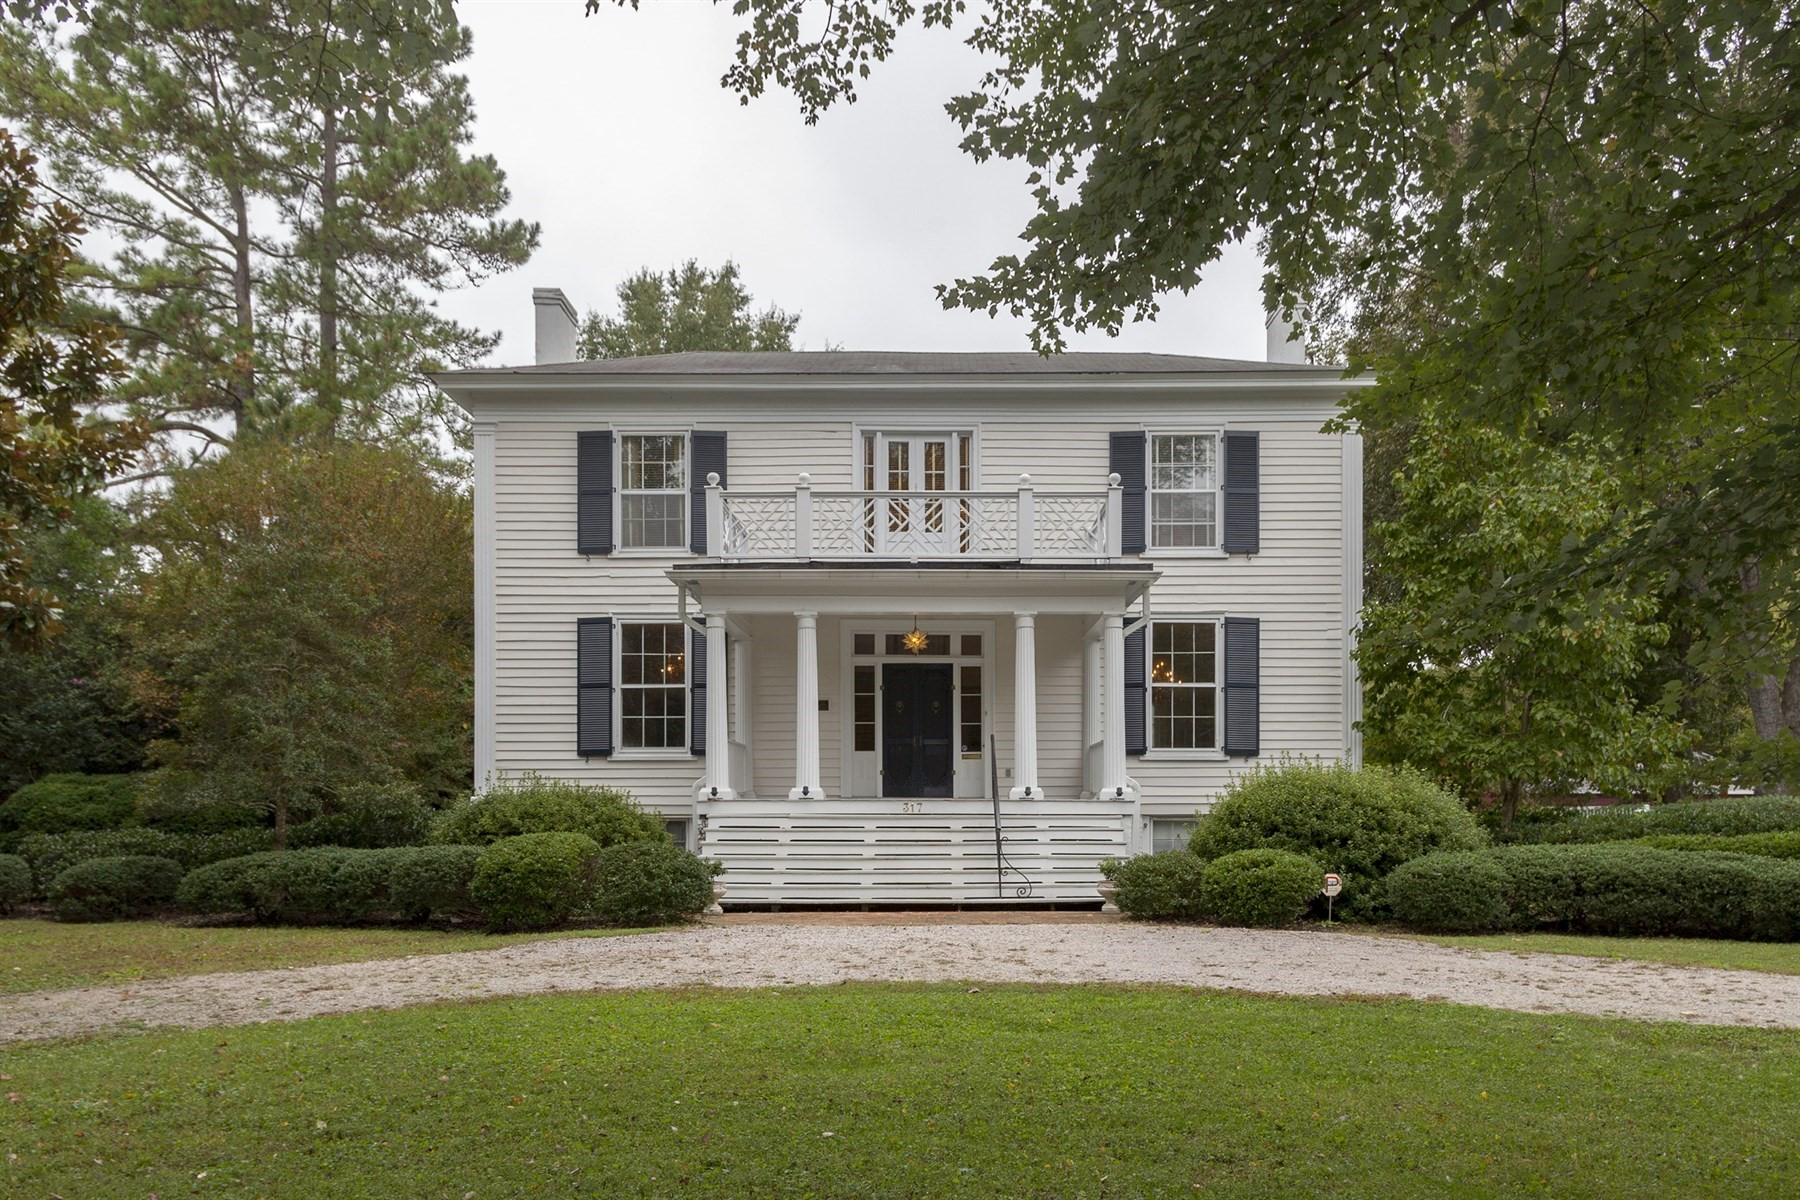 Single Family Home for Sale at Tarwater House (Green-Parker-Tarwater) circa 1850 317 NORTH MAIN STREET Warrenton, North Carolina 27589 United States